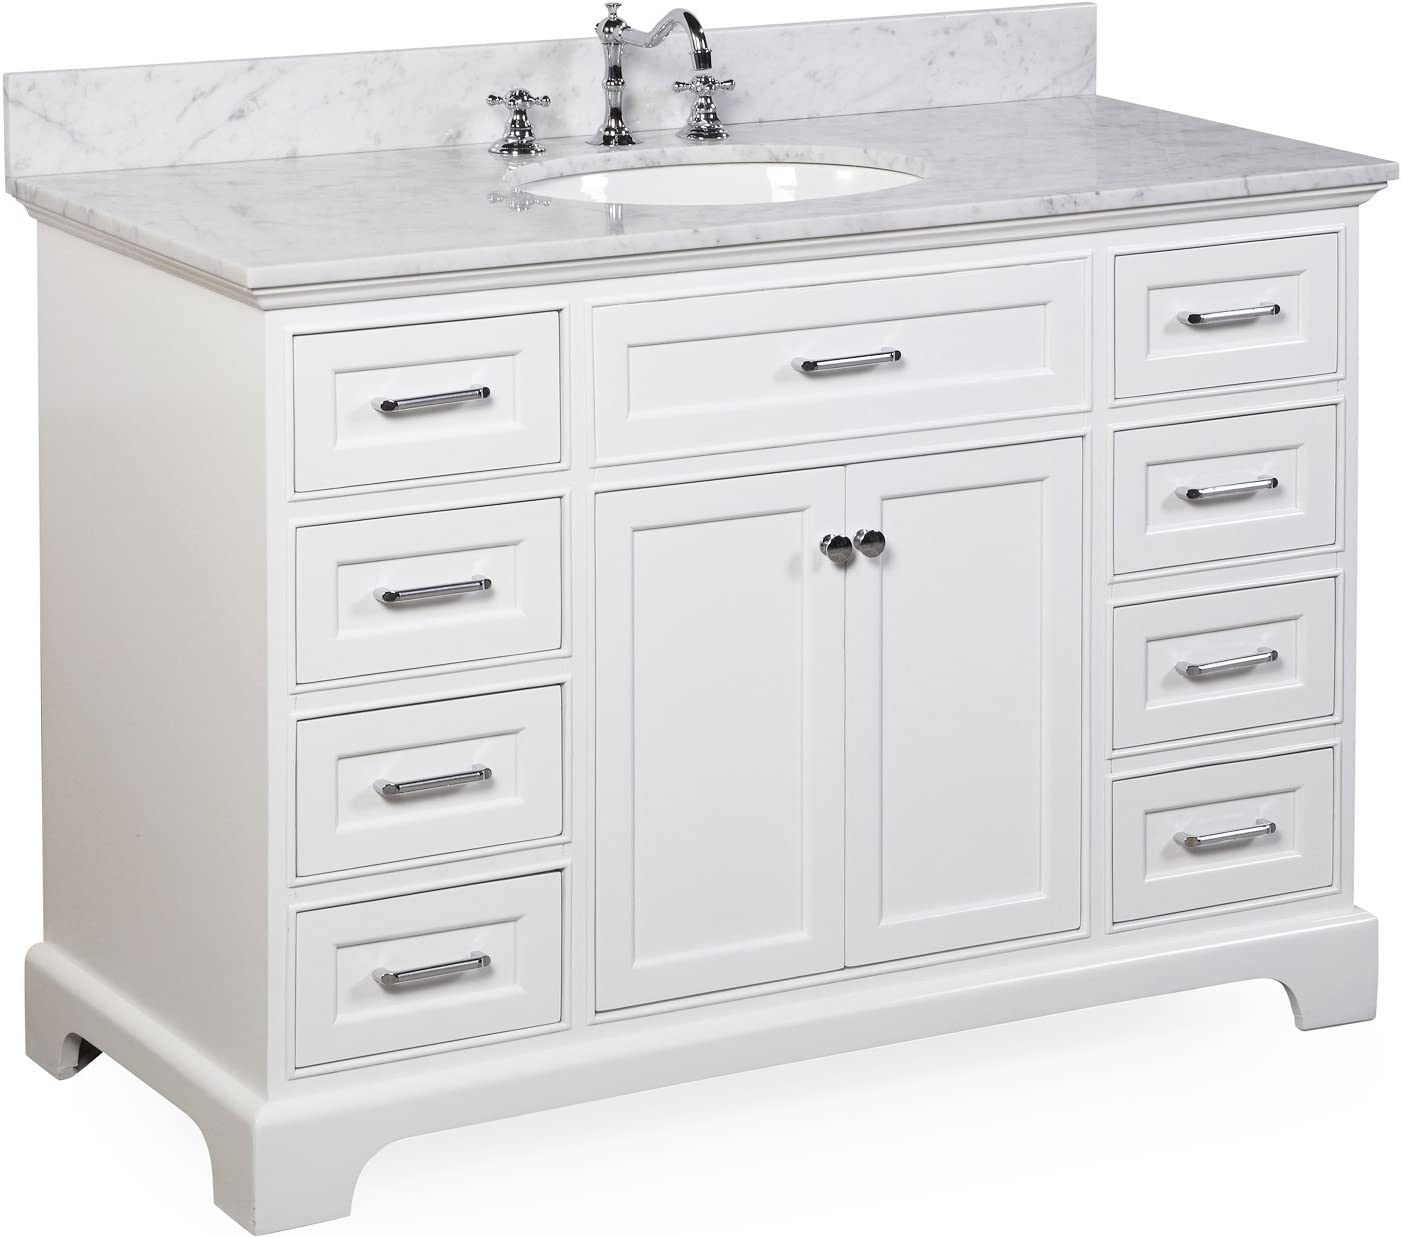 Aria 48-inch Bathroom Vanity Carrara White Includes a White Cabinet with Soft Close Drawers, Authentic Italian Carrara Marble Countertop, and White Ceramic Sink